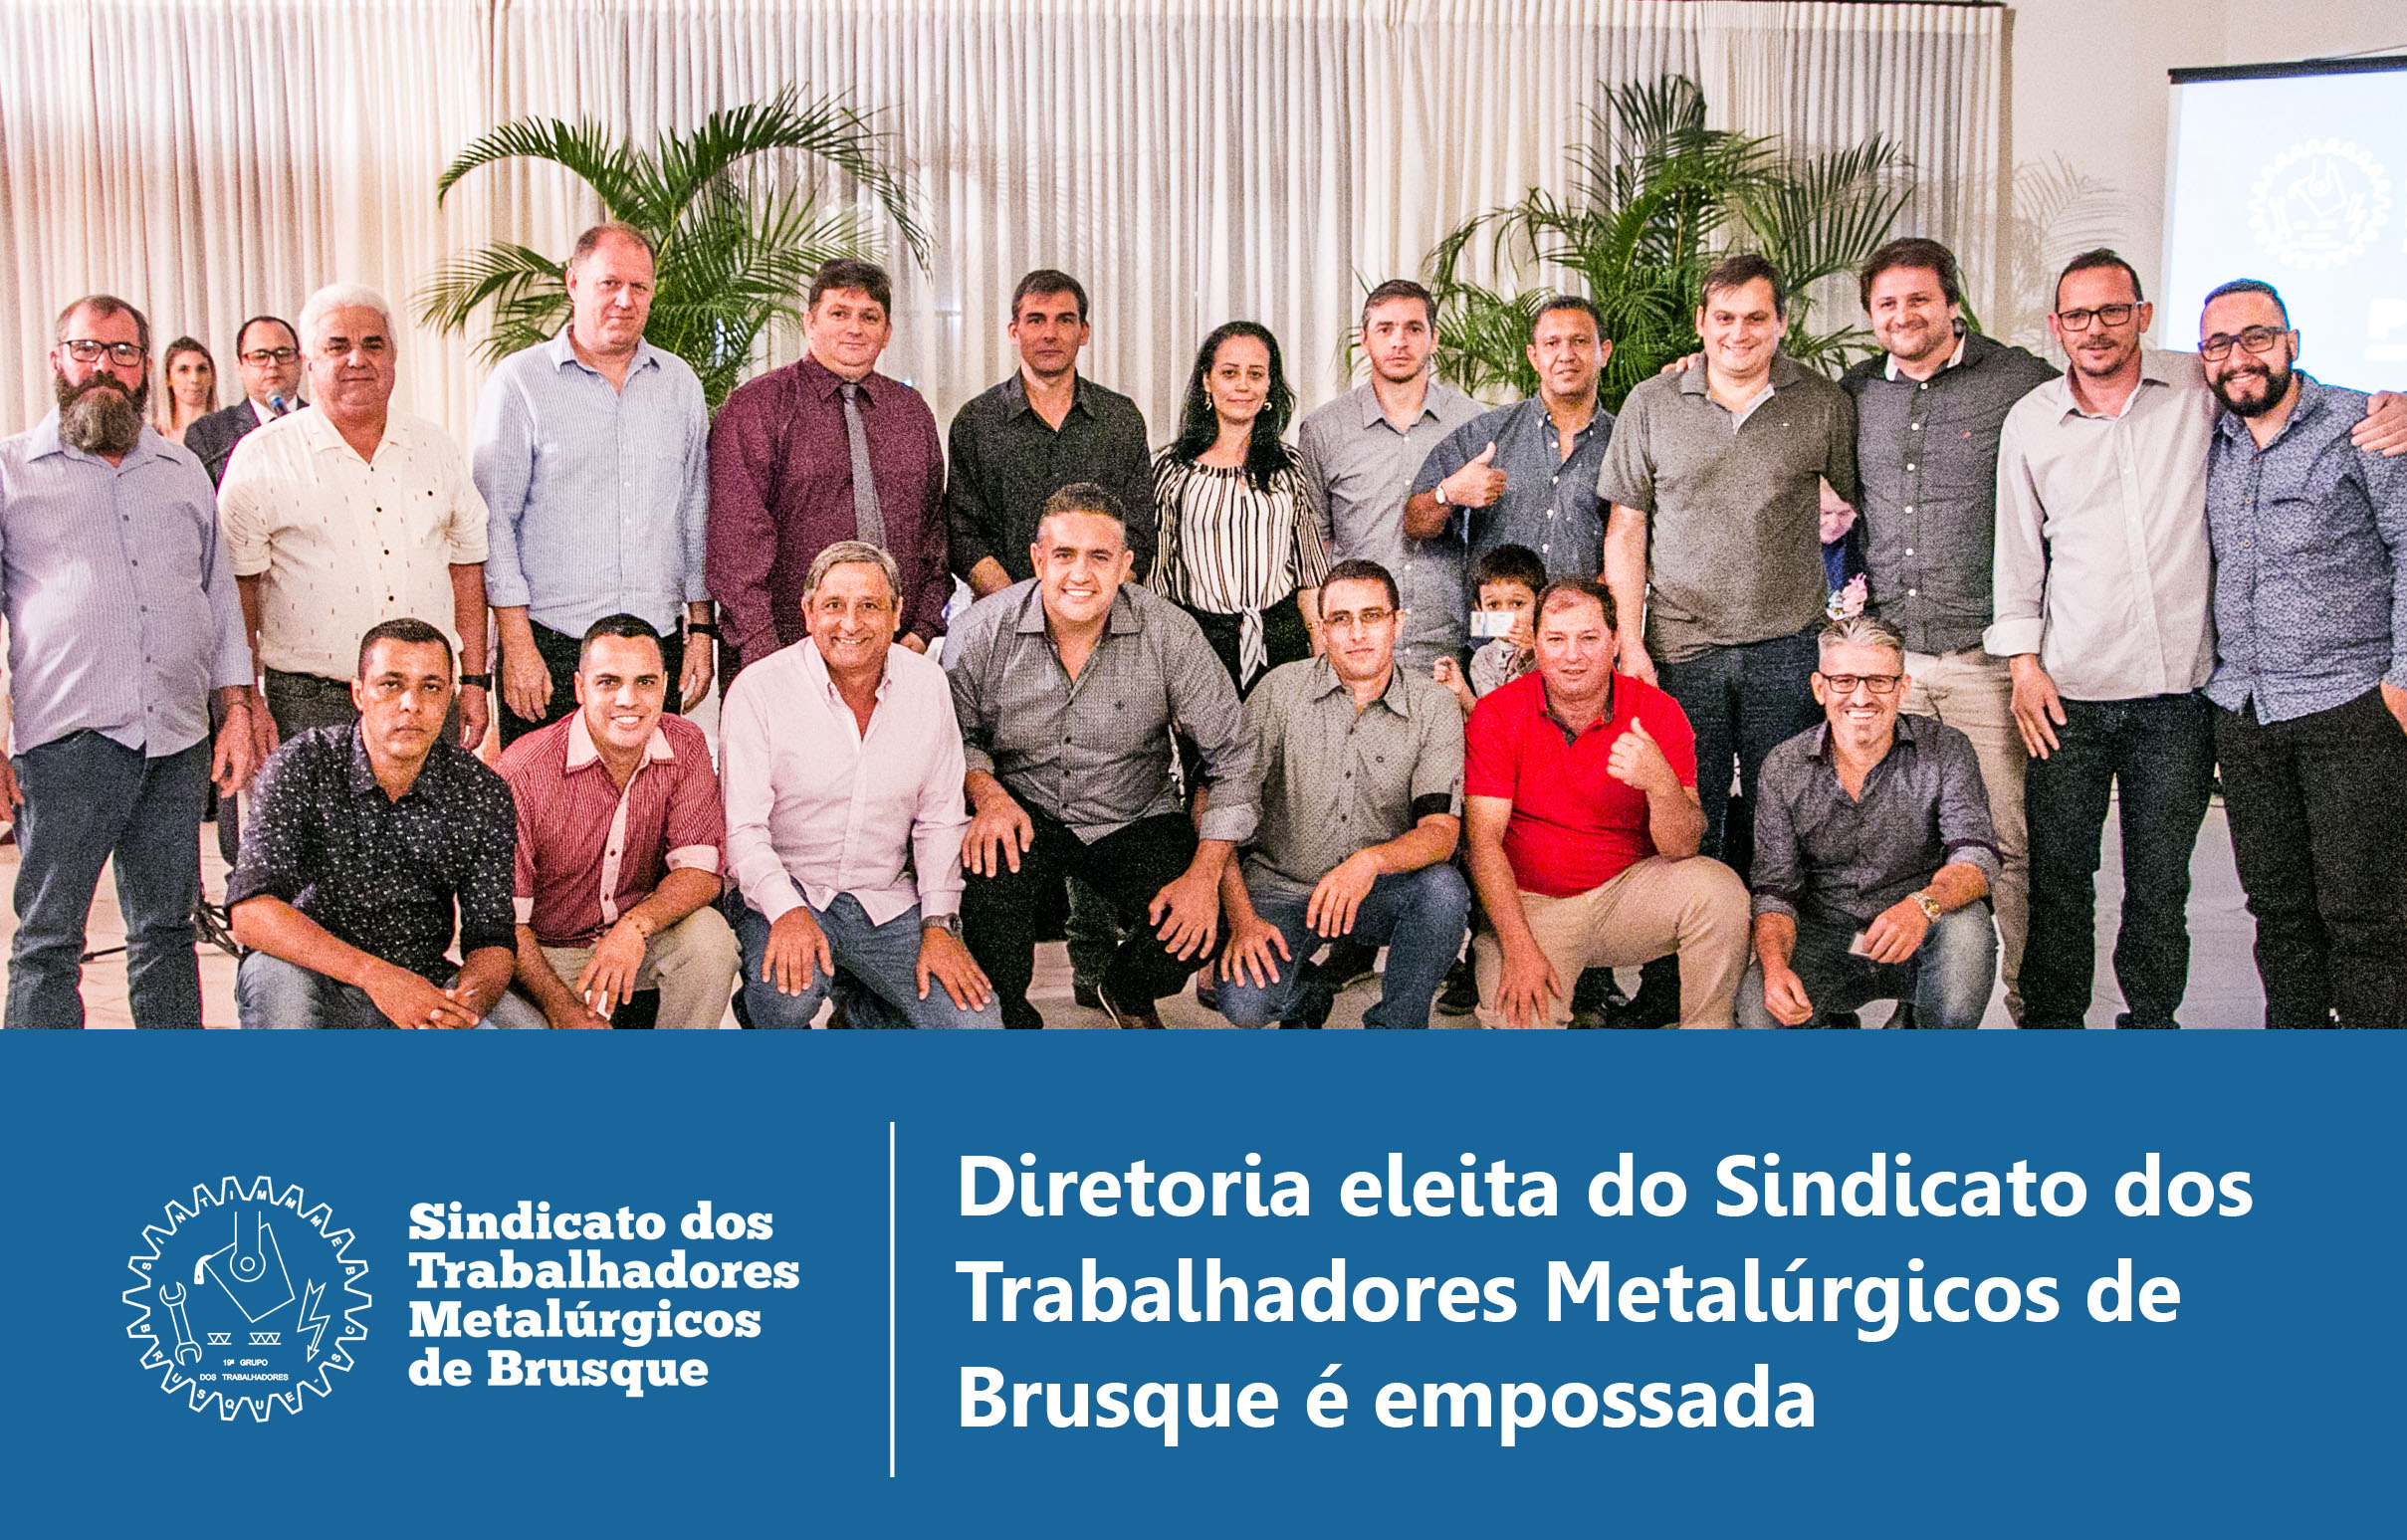 DIRETORIA ELEITA DO SINTIMMMEB TOMA POSSE | 30-04-2019